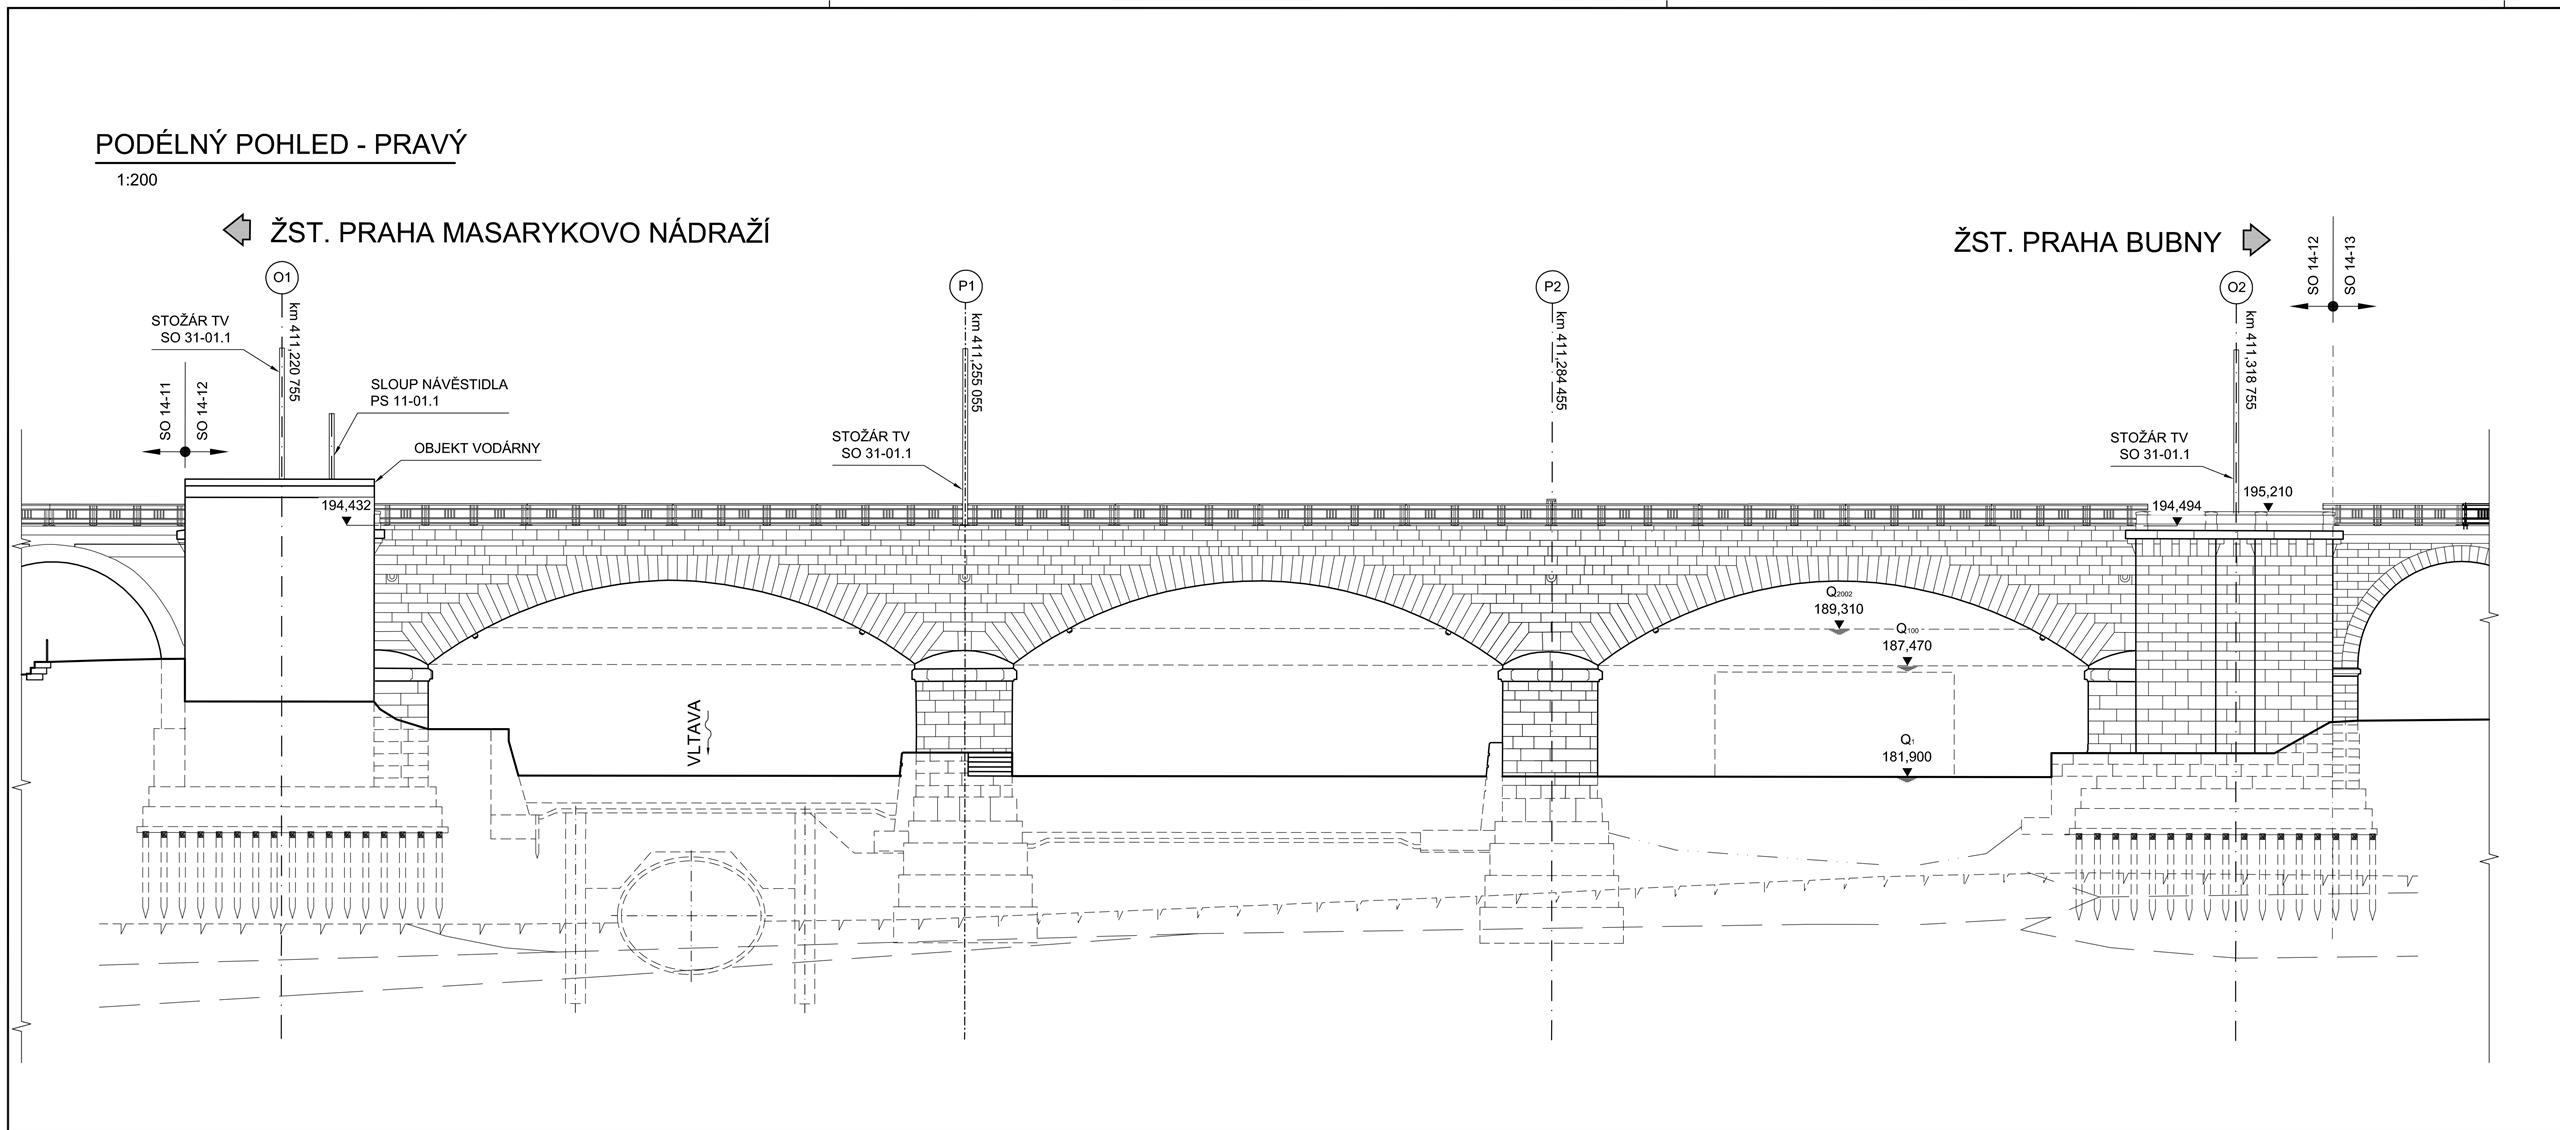 Detailed drawing of the viaduct